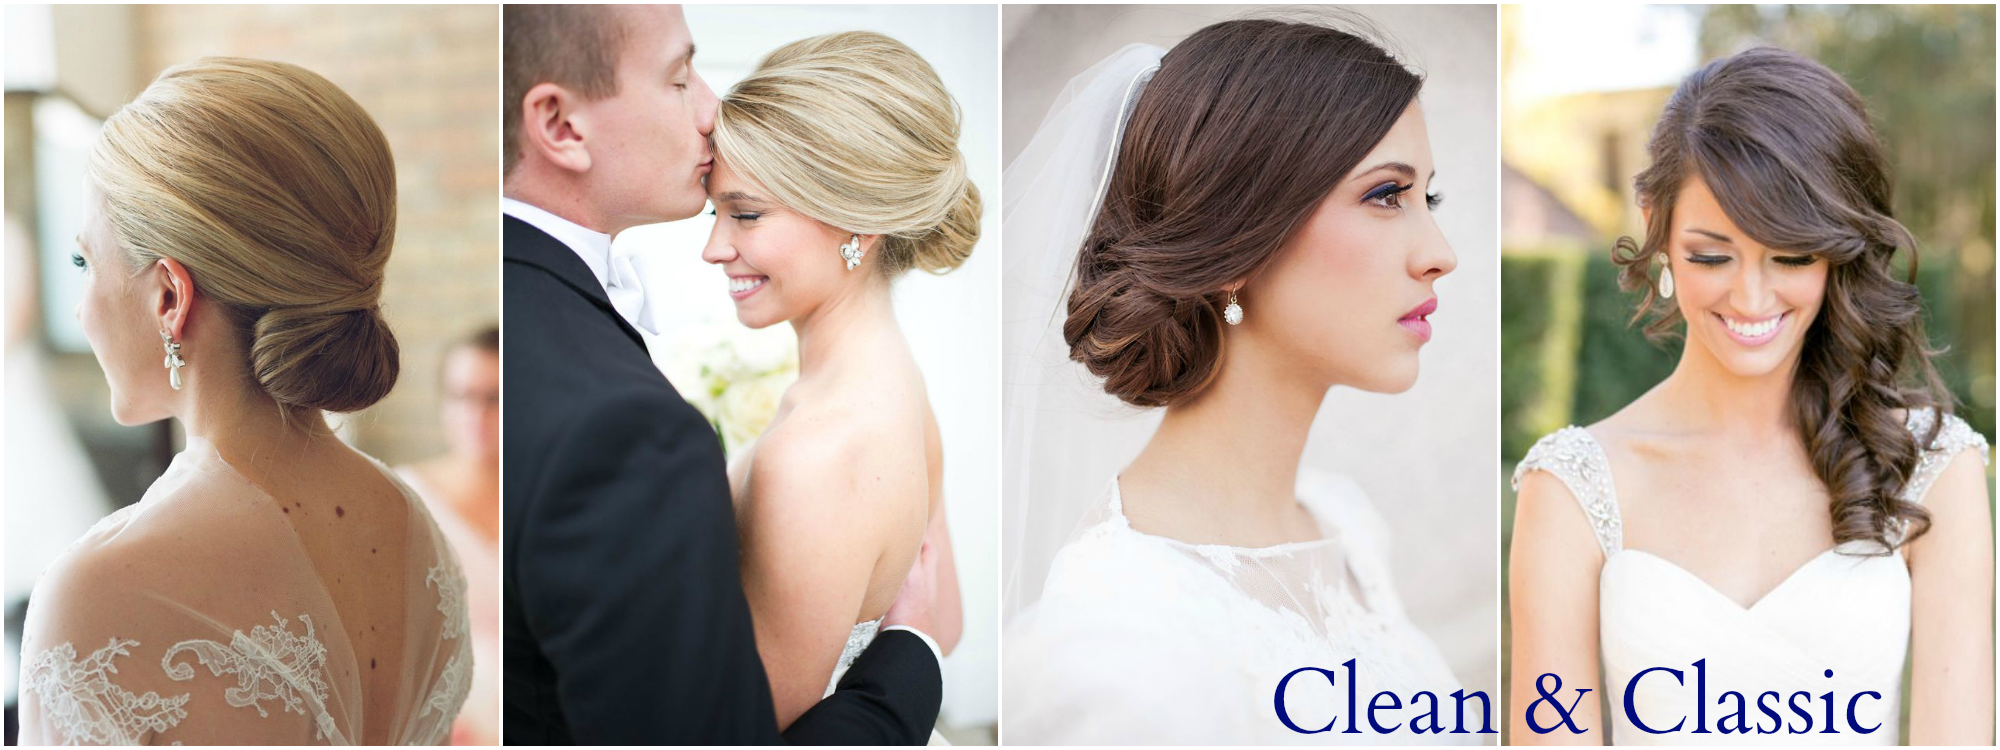 Photos by   Lindsey Orton.   Hair and makeup by  Steph     Photography:  Amalie Orrange Photography  Makeup:  Anette At In Style Hair Orlando  | Hair:  Justin At In Style Hair Orlando